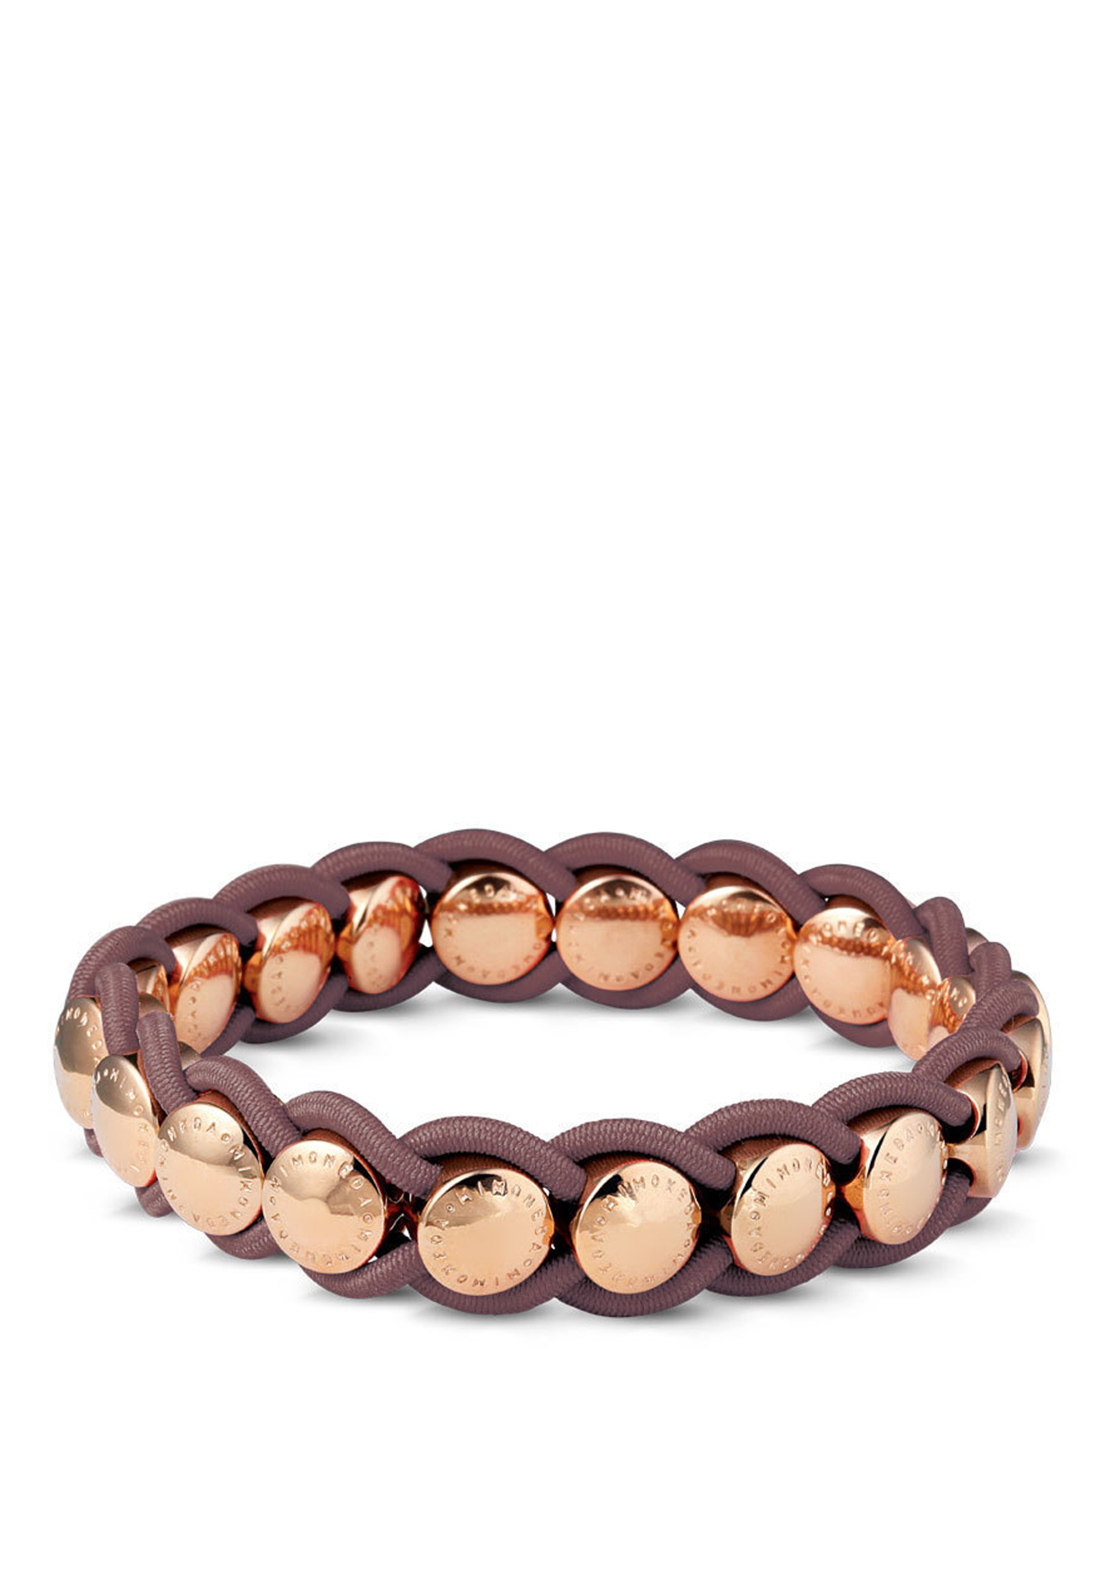 Mi Moneda Valencia Bracelet, Rose Gold and Taupe